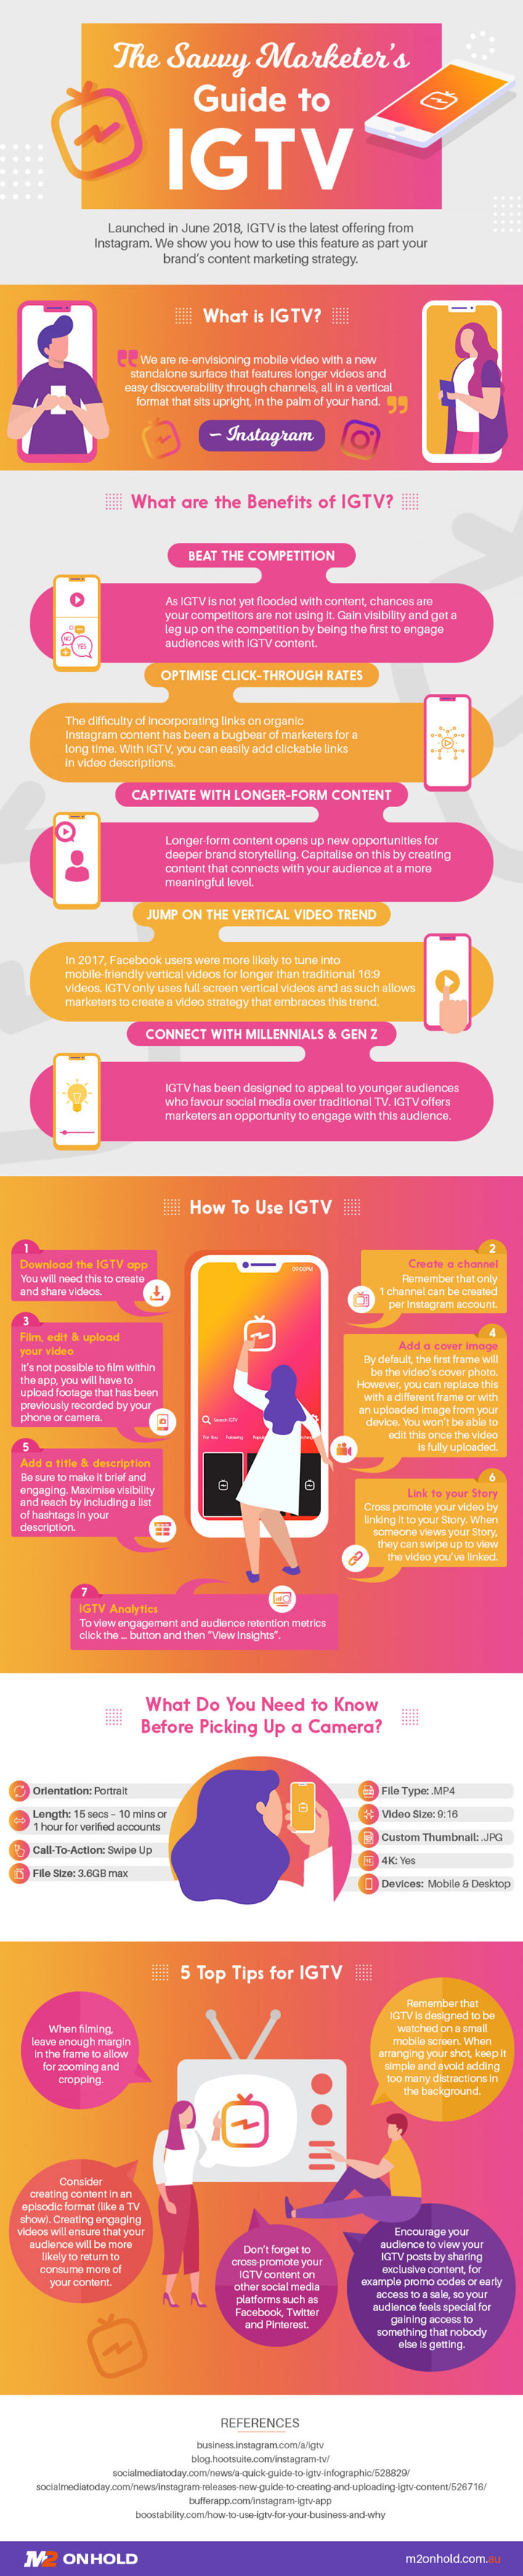 IGTV marketing guide infographic